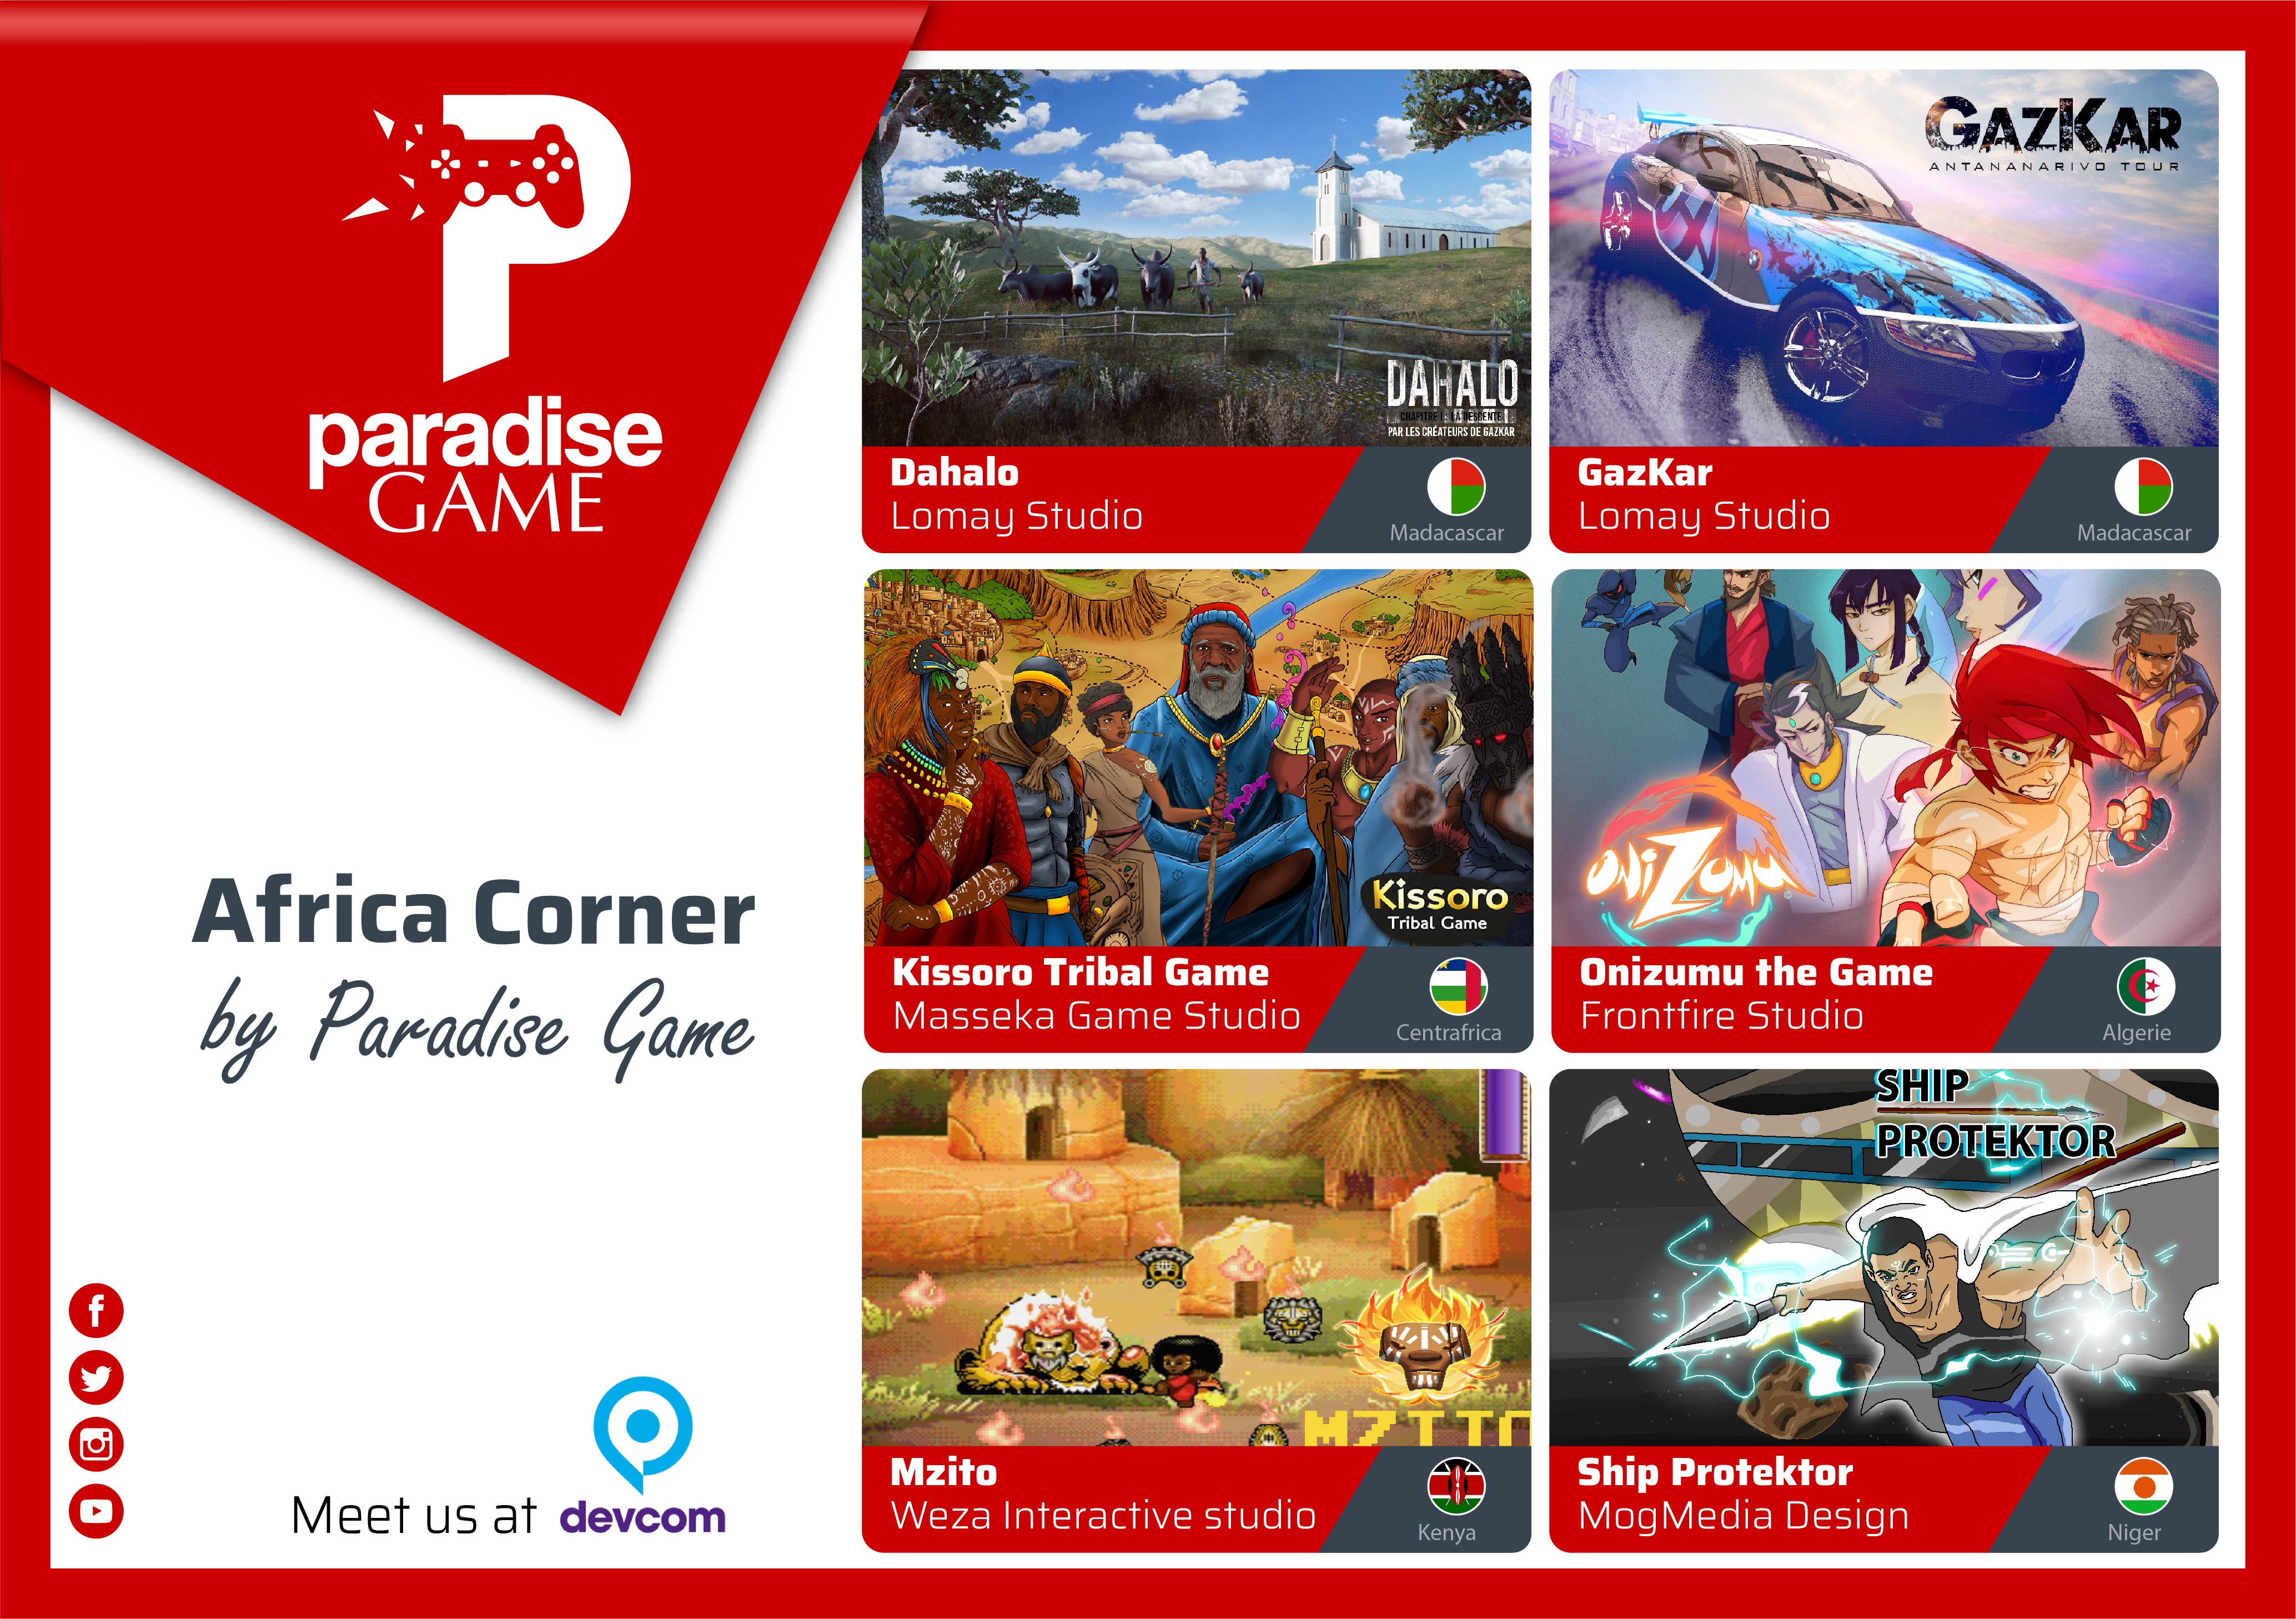 Video Games made-in-Africa reach the Global Scene during Devcom Thanks to Paradise Game, ahead of Gamescom 2018